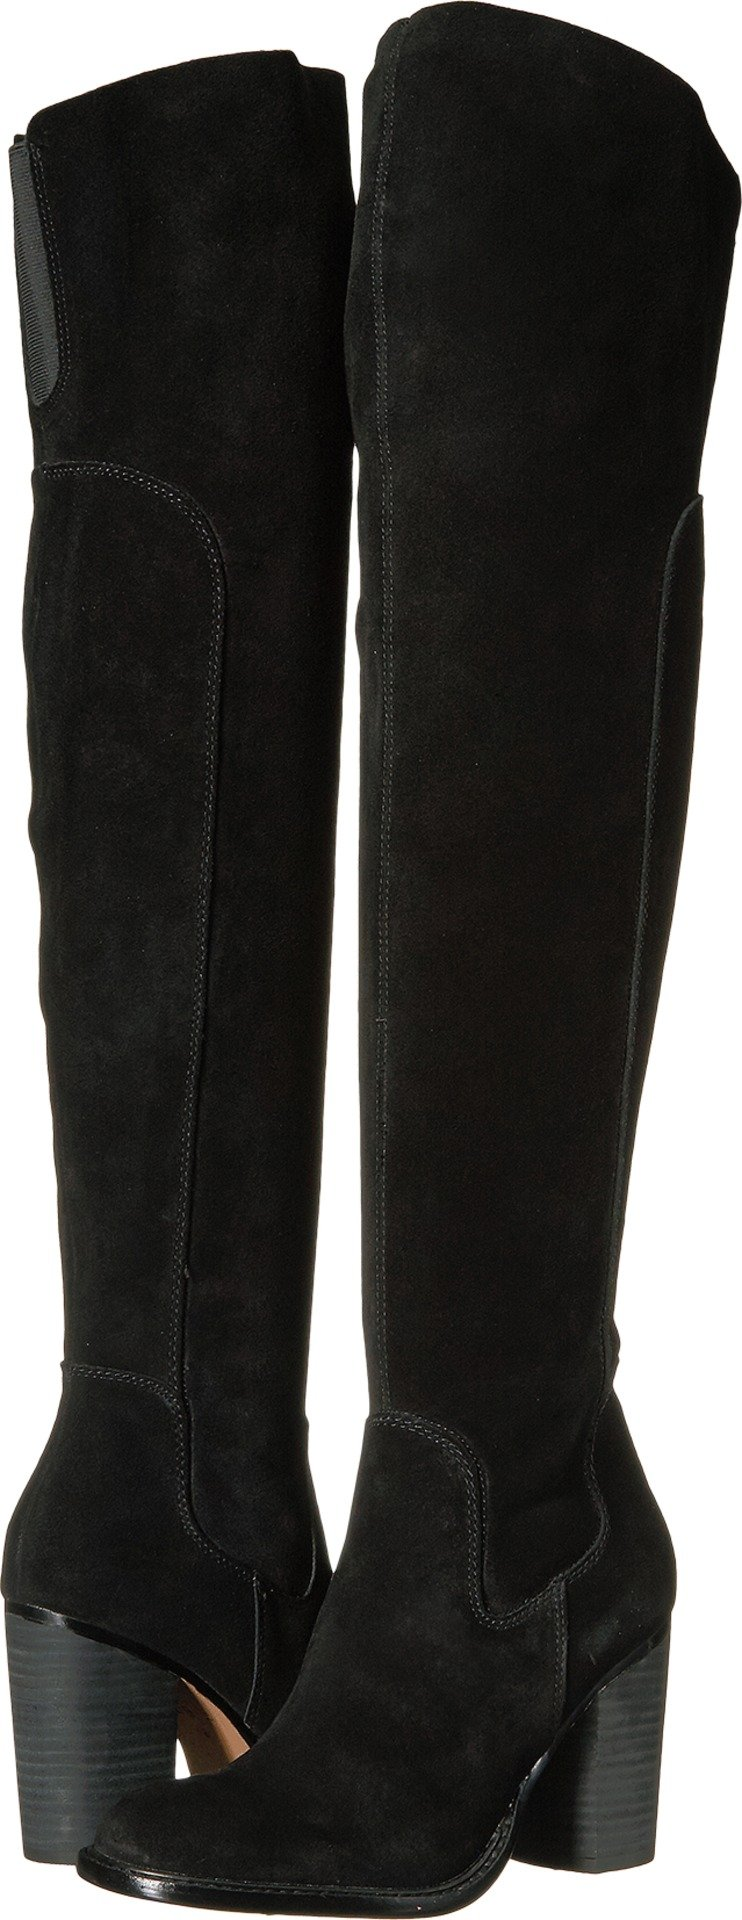 Kelsi Dagger Brooklyn Women's Logan Over the Knee Boot, Black, 6.5 Medium US